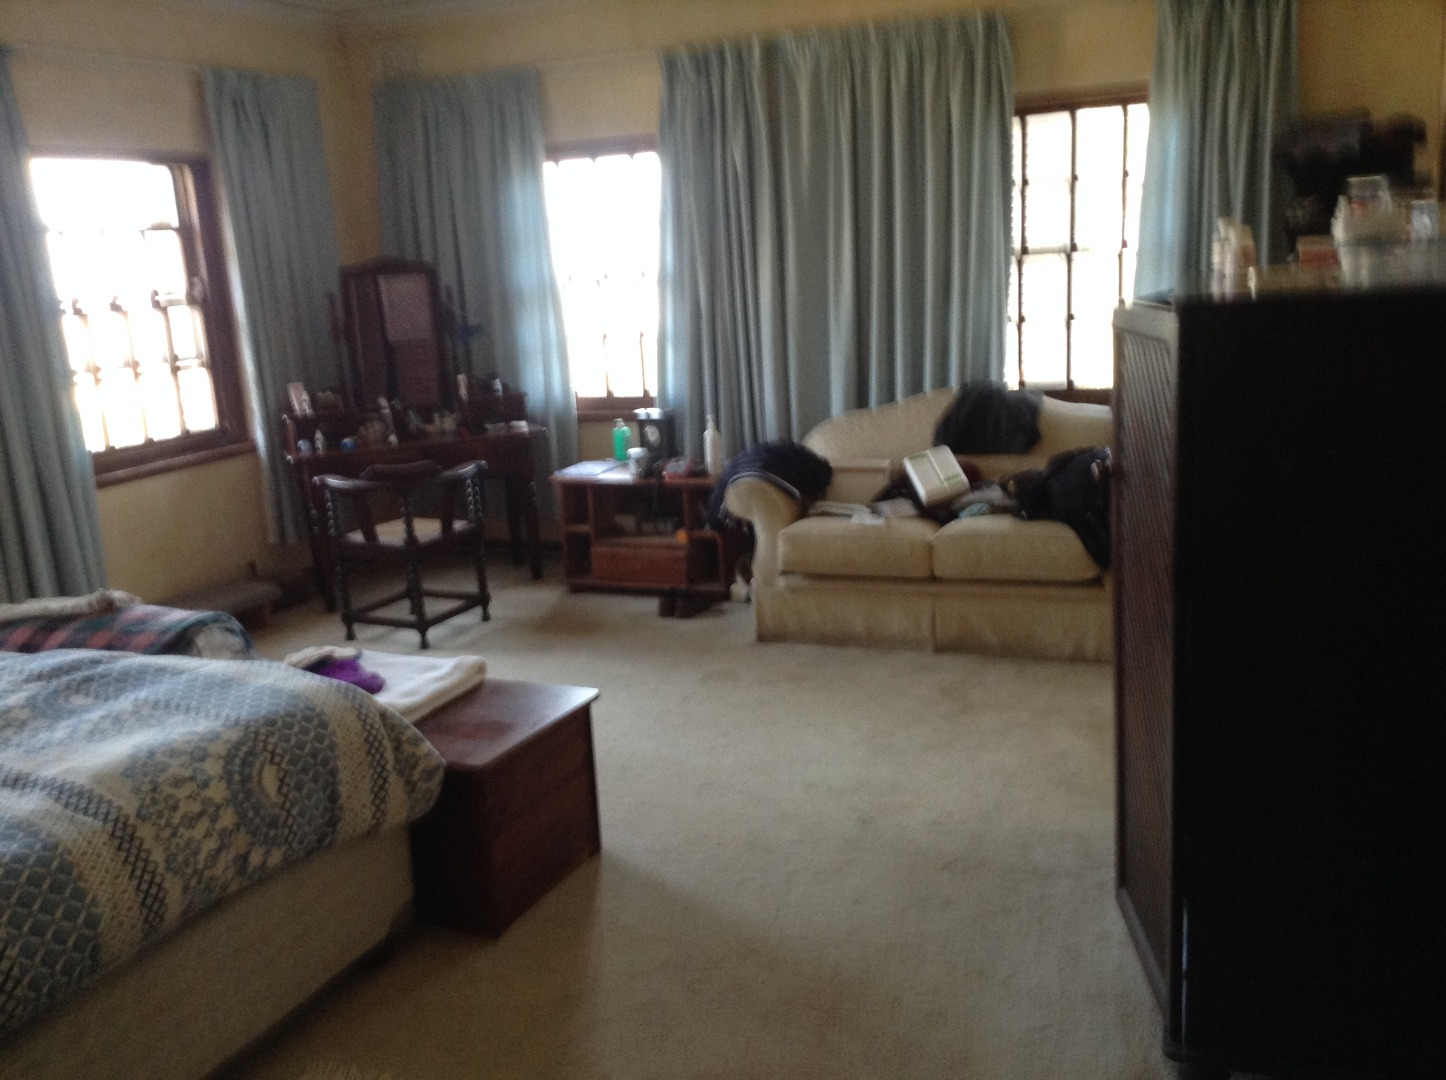 6 Bedroom House For Sale in Glenmore